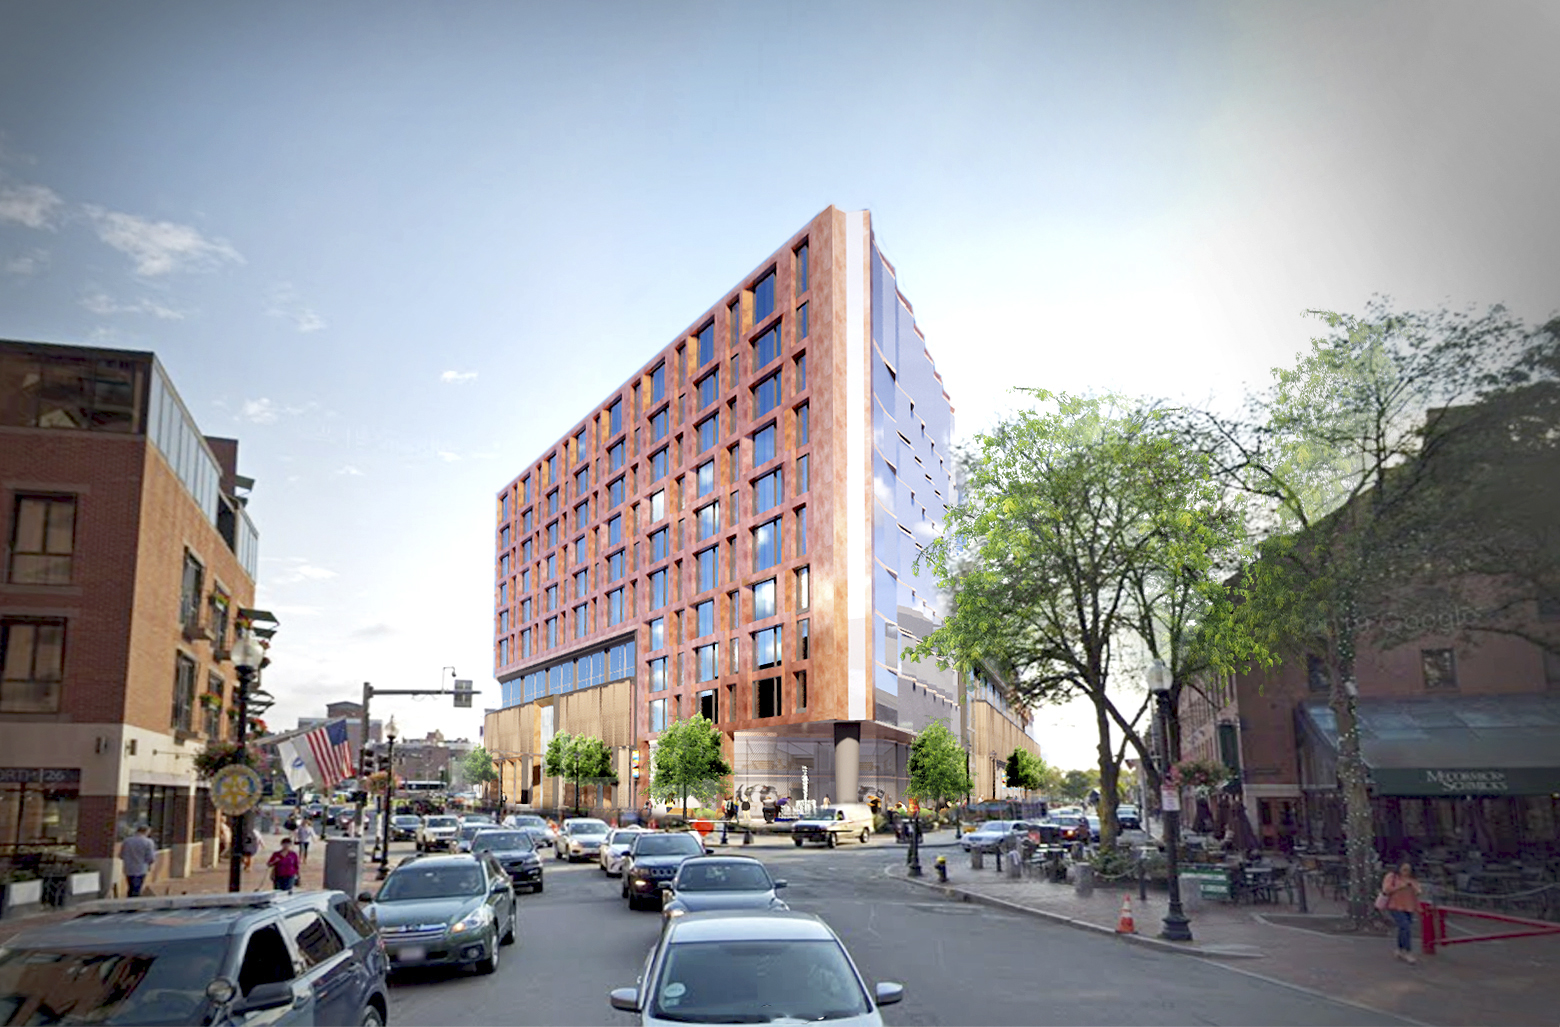 200-plus unit condo project for Dock Square Garage moves forward